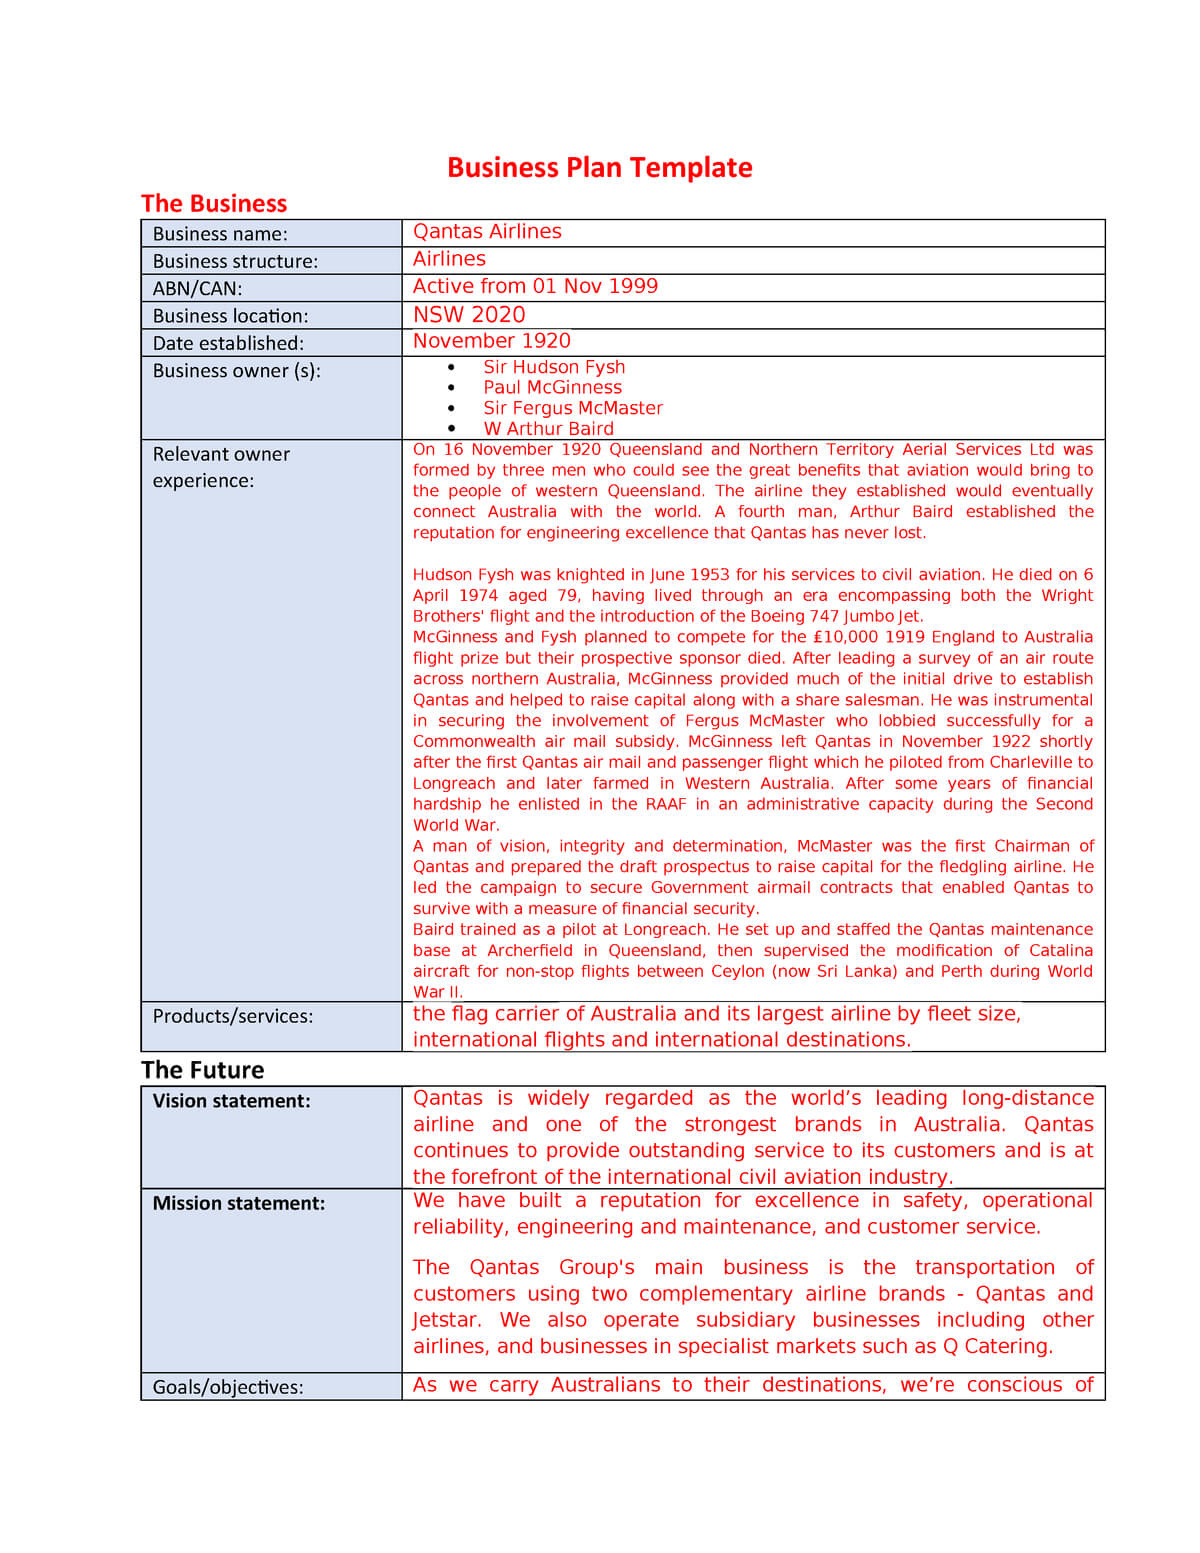 Australia Government Business Plan Template Australian In Australian Government Business Plan Template